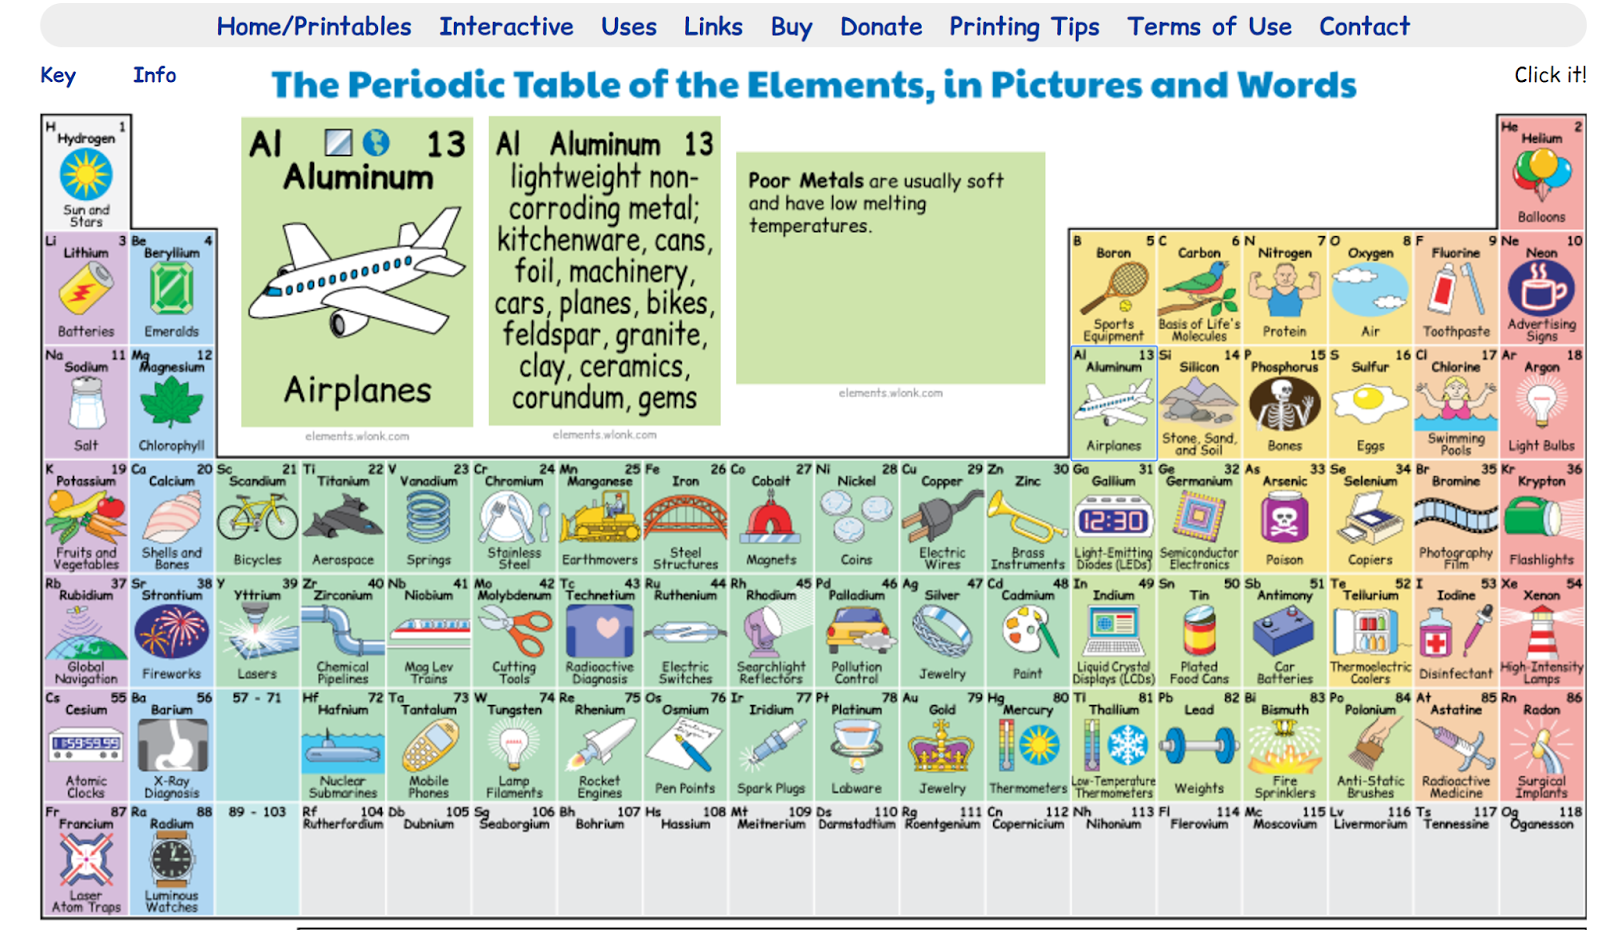 Free technology for teachers the periodic table in pictures and words the periodic table of elements in pictures and words could be a great resource for middle school science classrooms it also provides a nice model for an urtaz